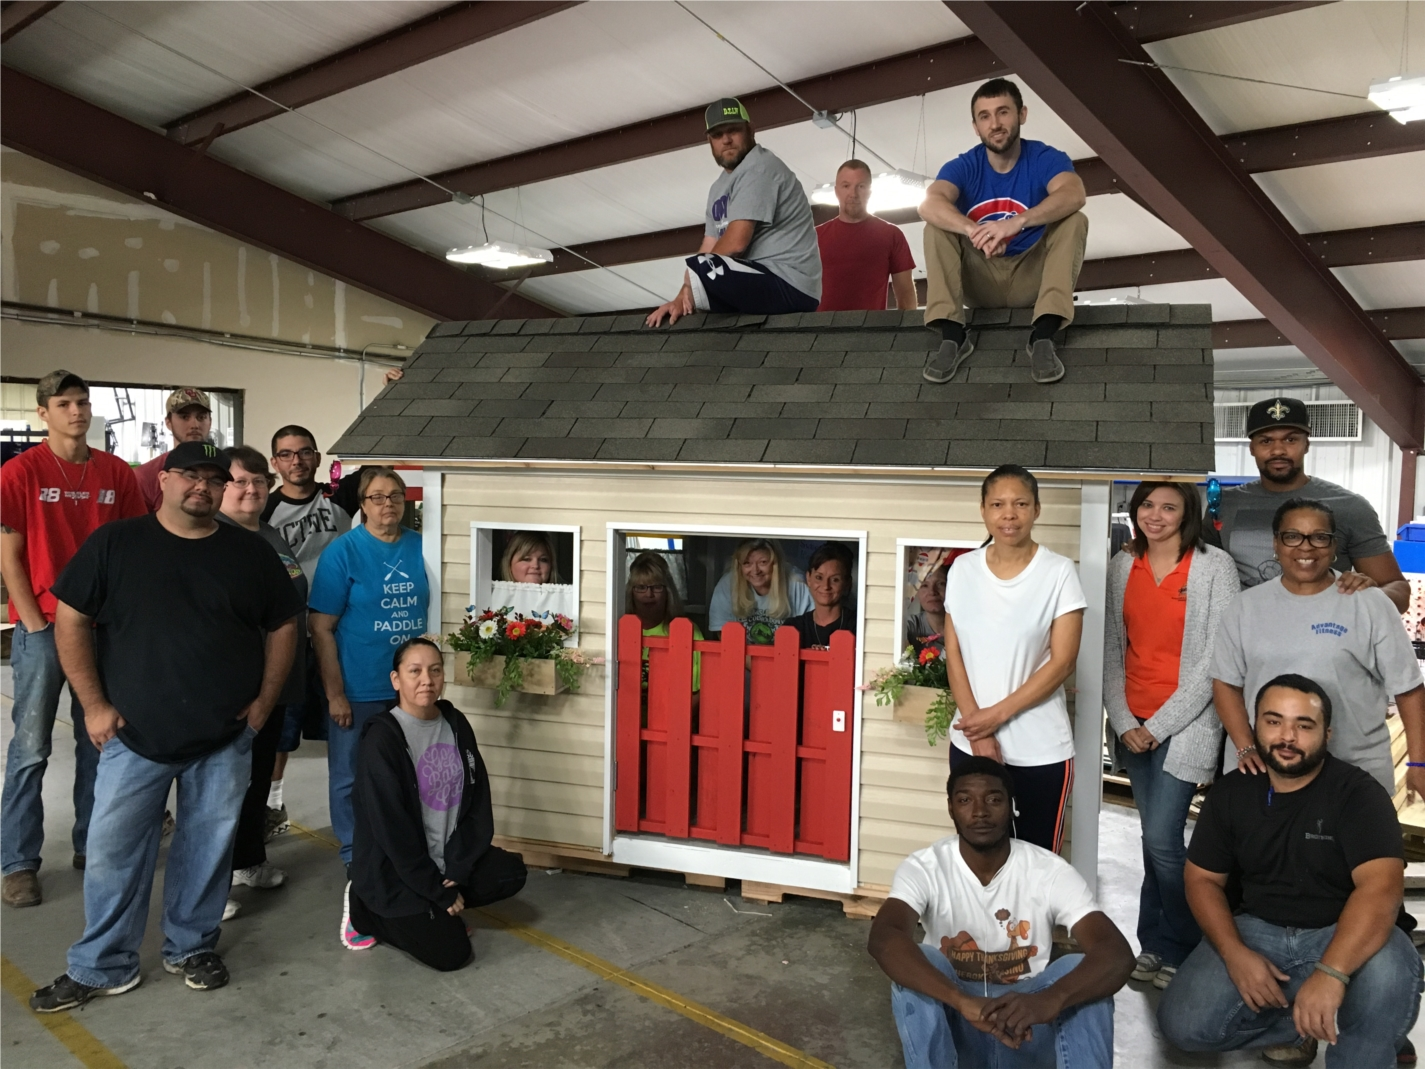 Advantage Controls team members built playhouses to help support CASA as part of the United Way Day of Caring